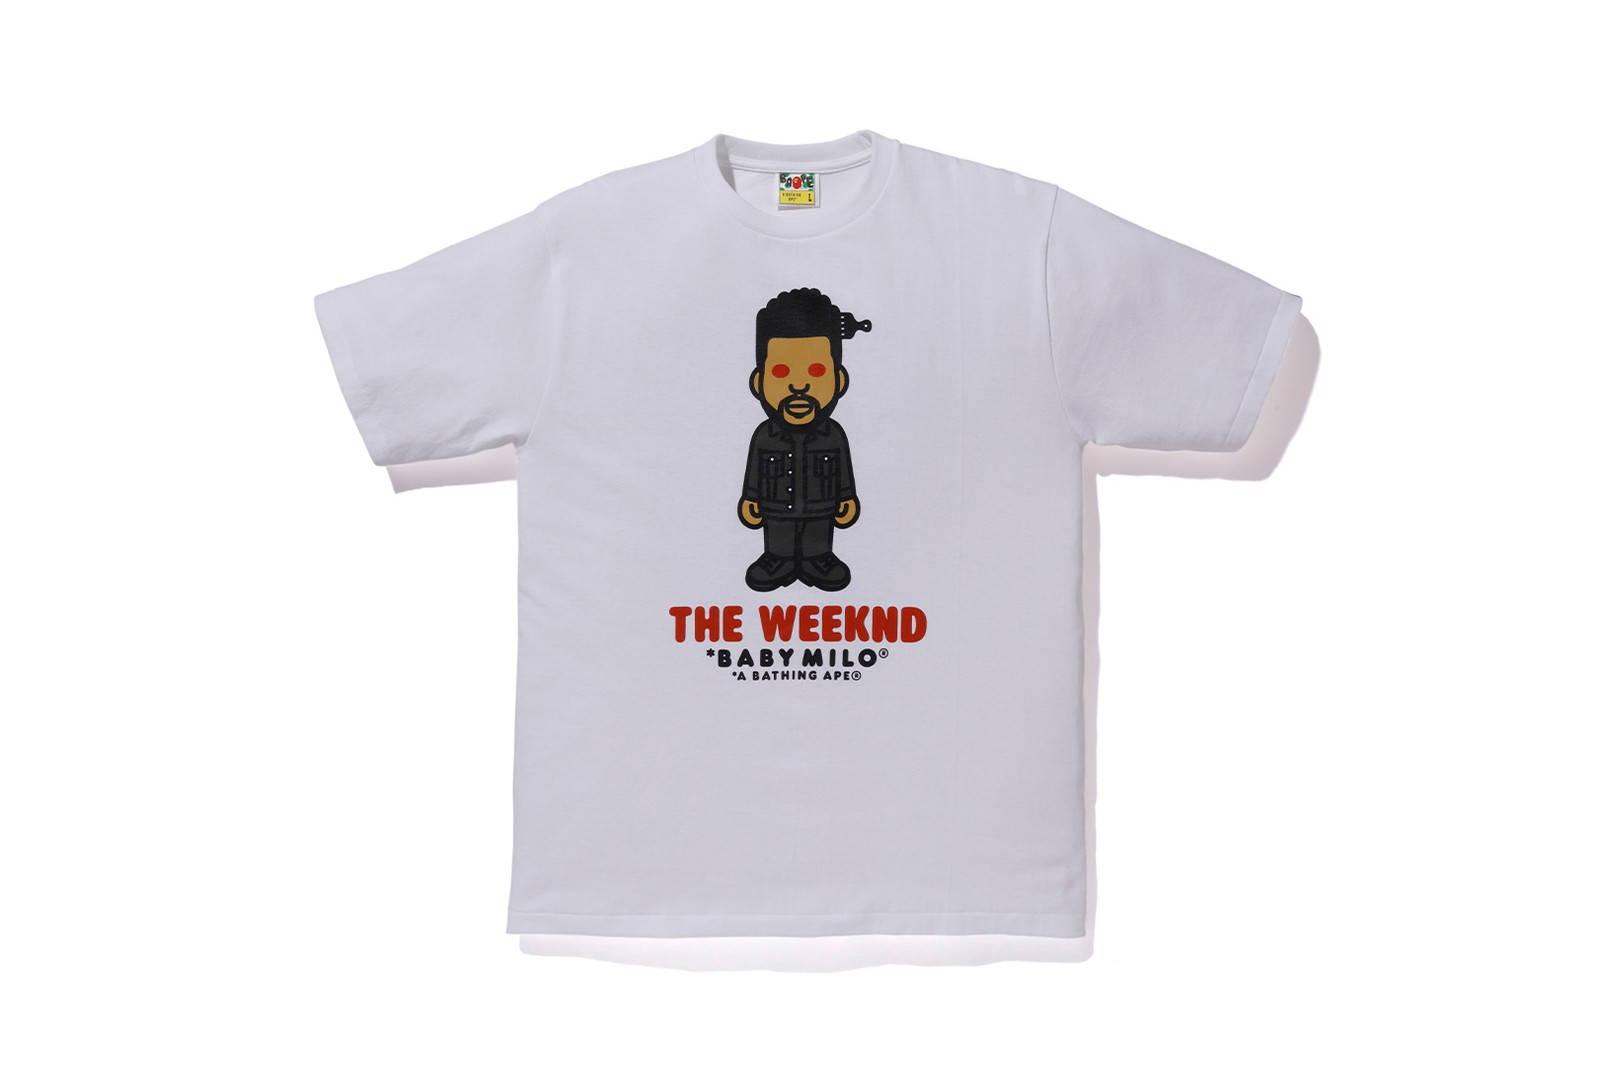 the weeknd a bathing ape xo bape hoodies t-shirts sweatpants collaboration